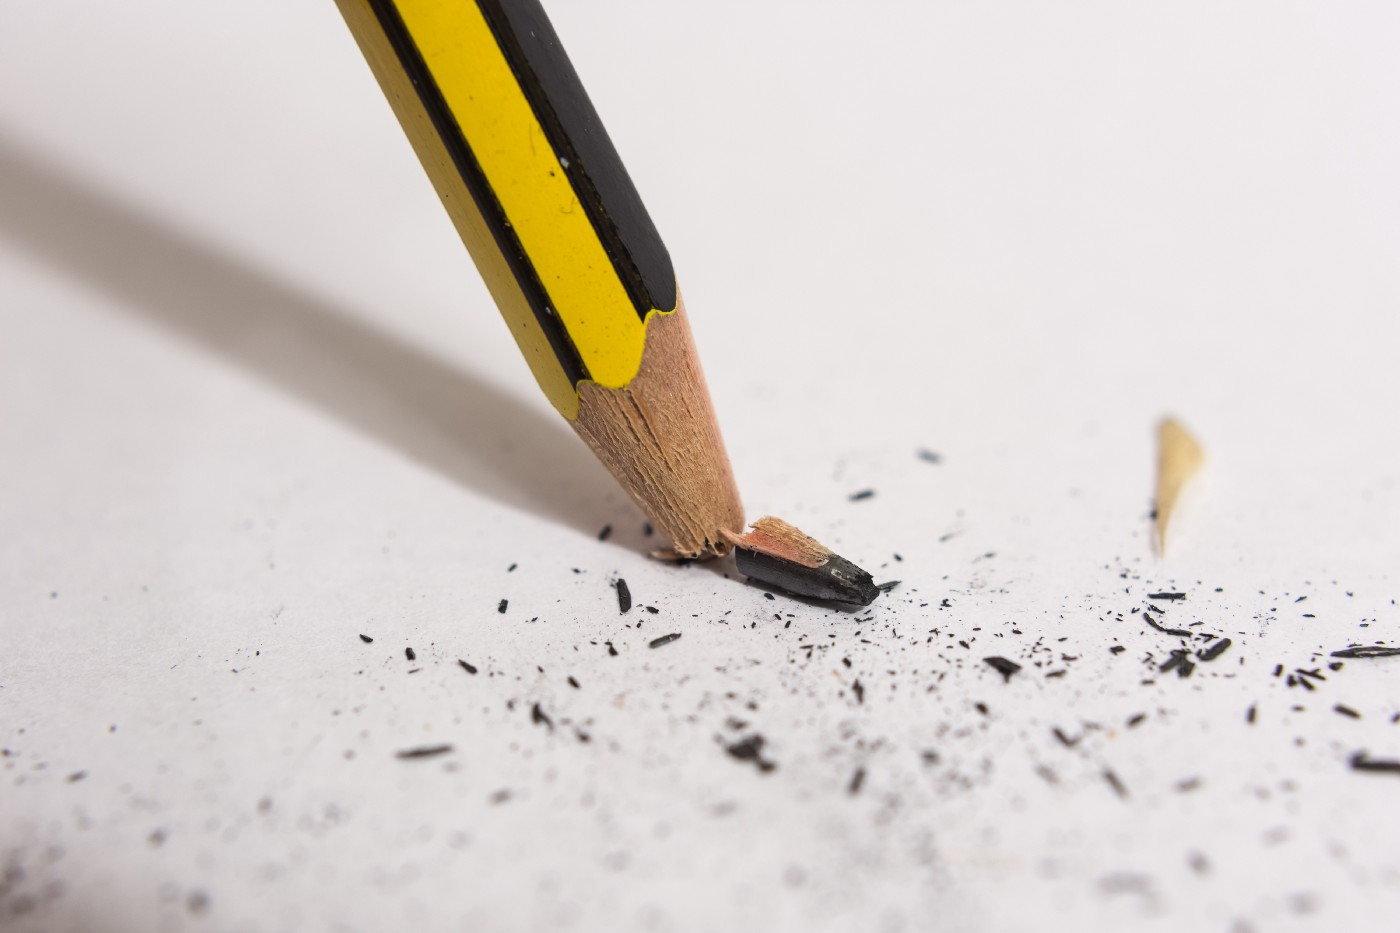 A yellow and black pencil is pressed against paper and the tip of it has just snapped under the pressure.